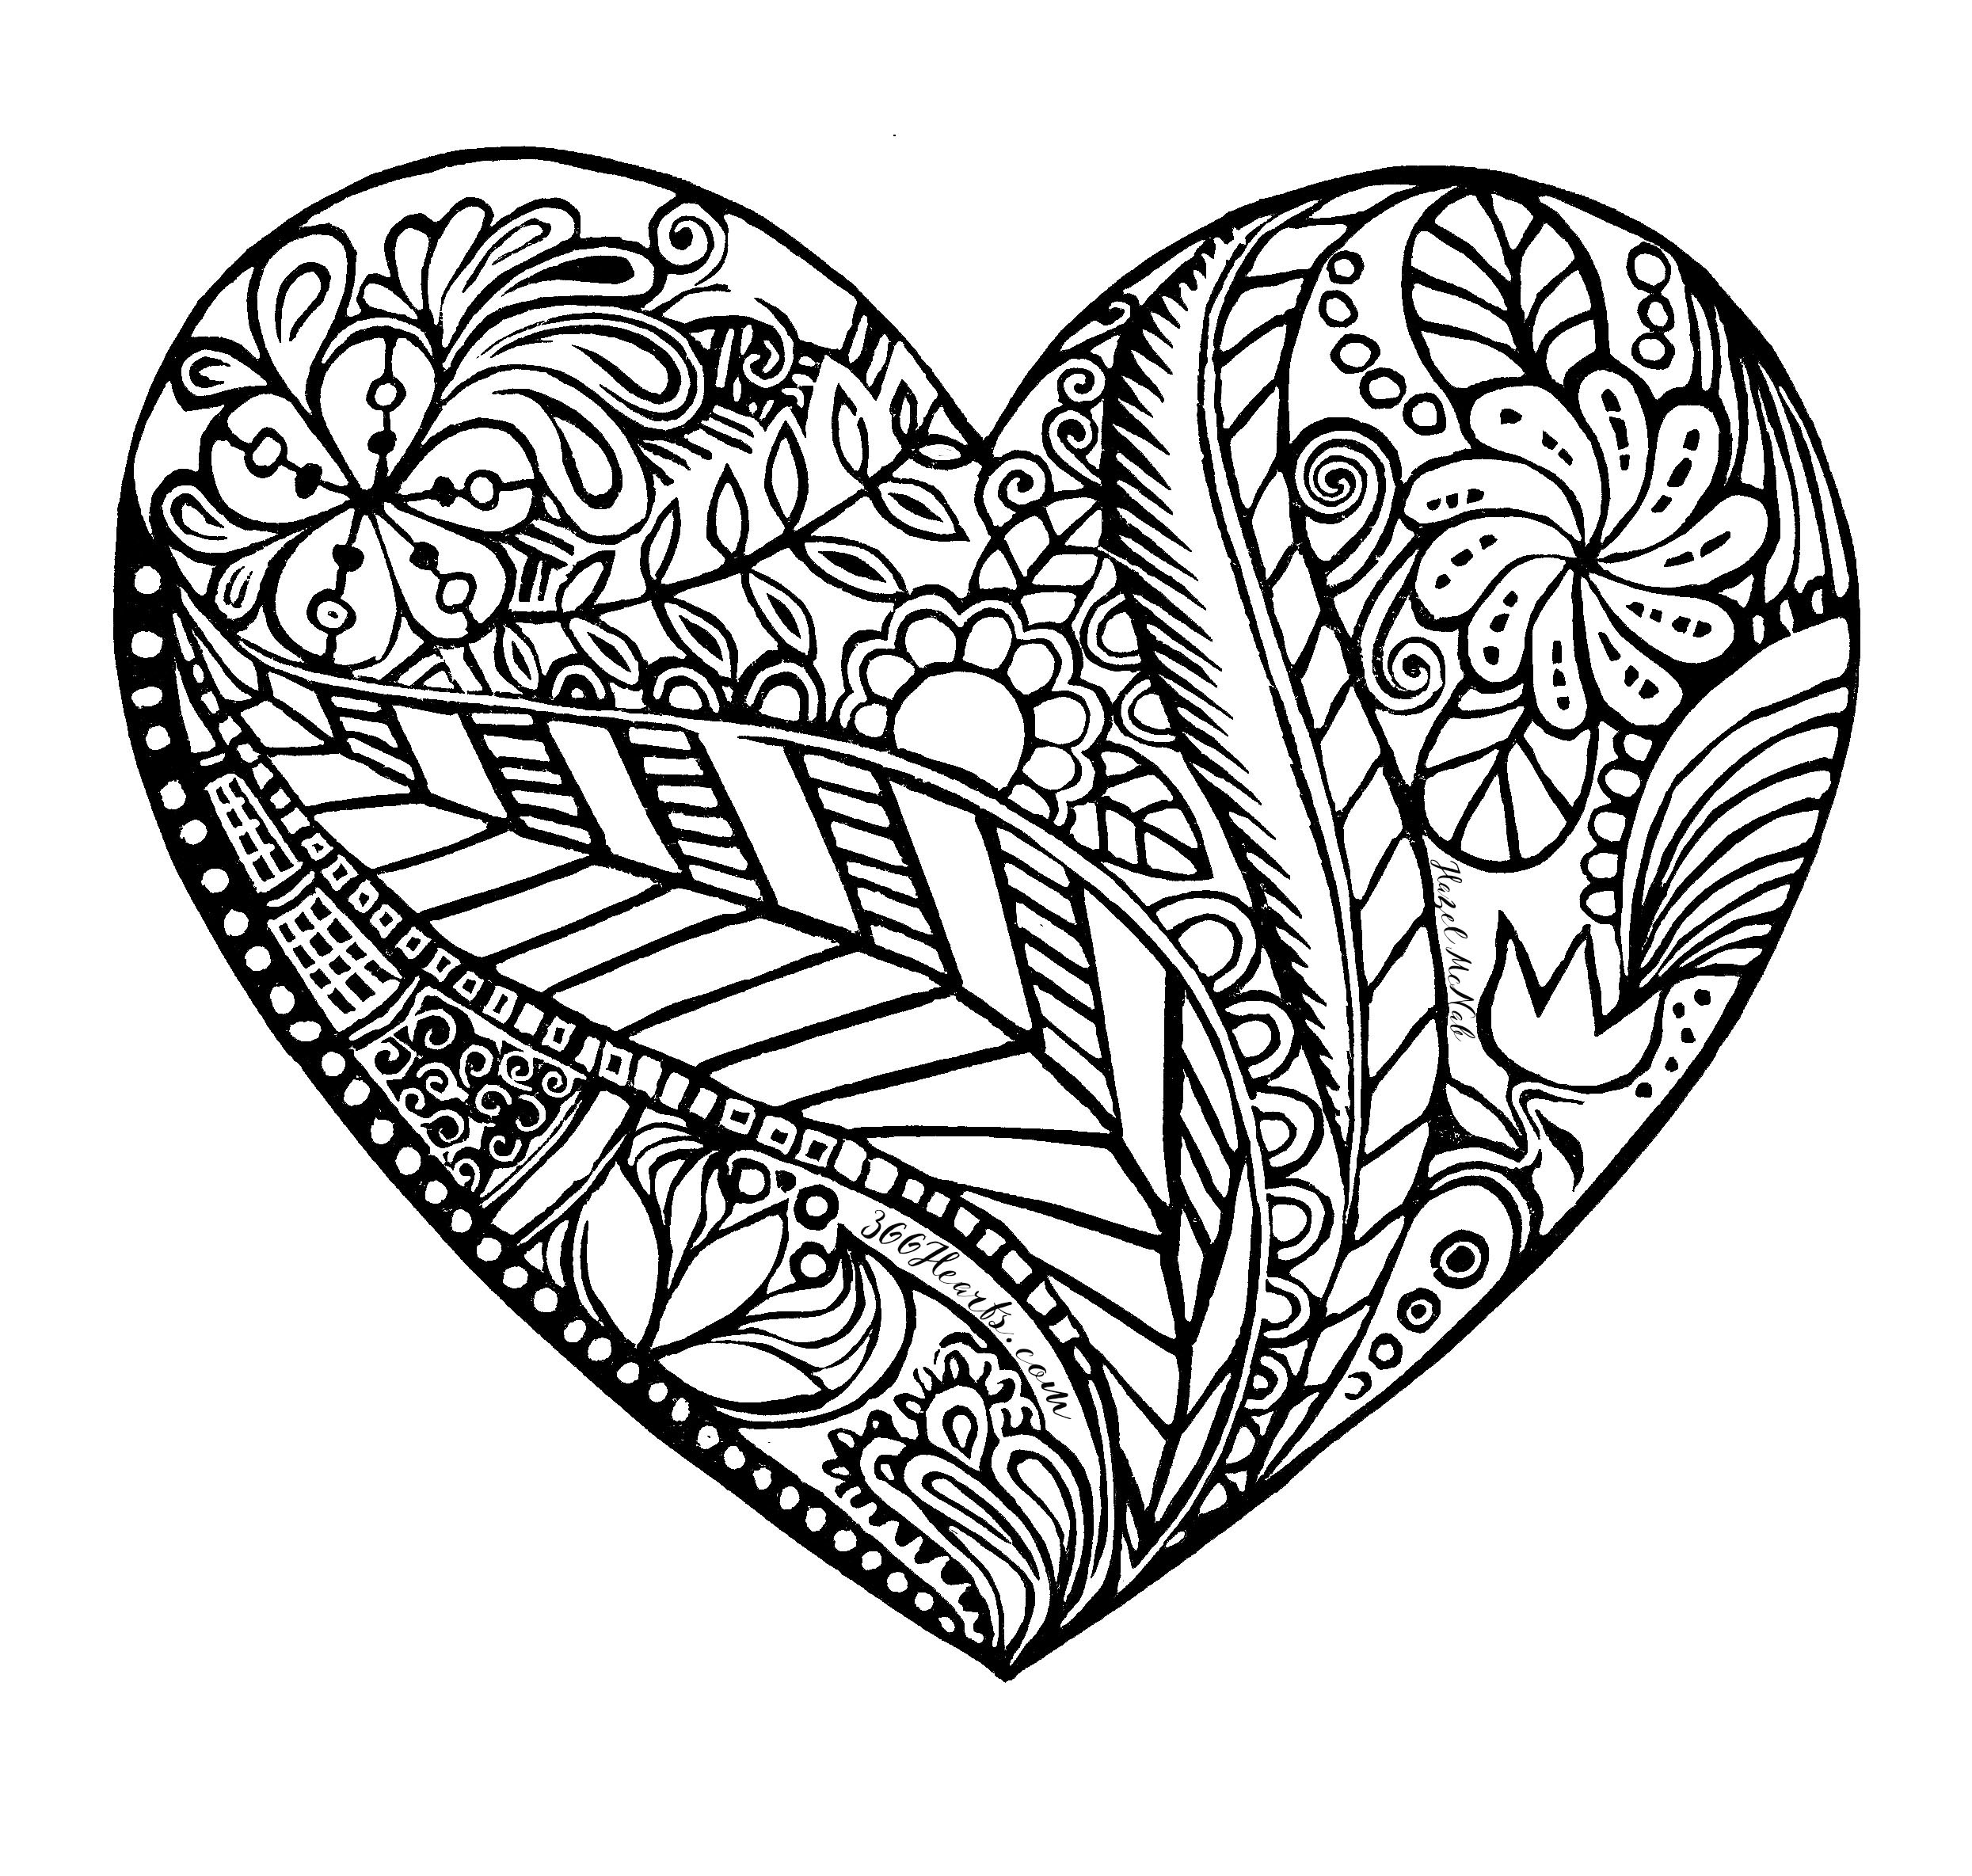 A heart to color by 366Hearts.com | TeachKidsArt